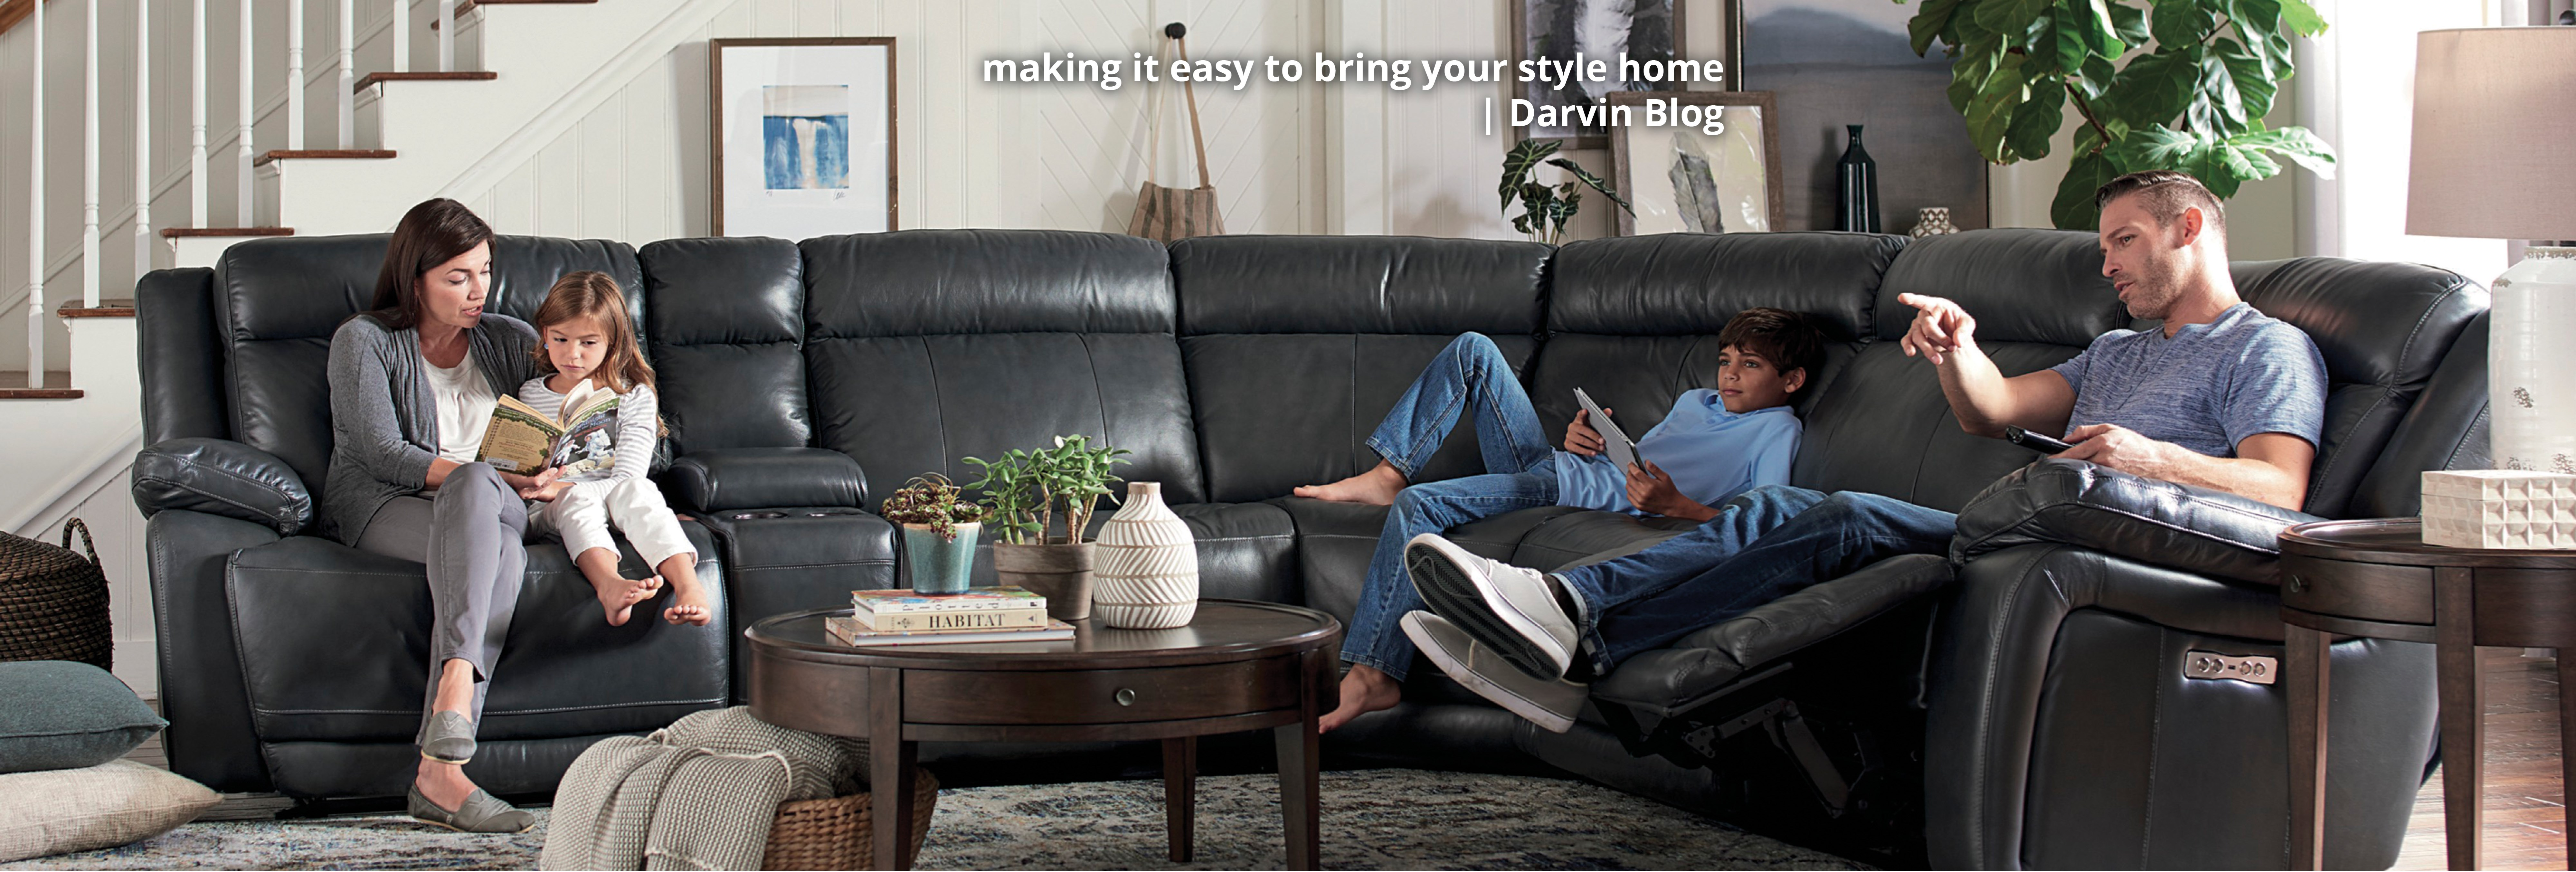 Socozi Motion Furniture Darvin Furniture Orland Park Chicago Il